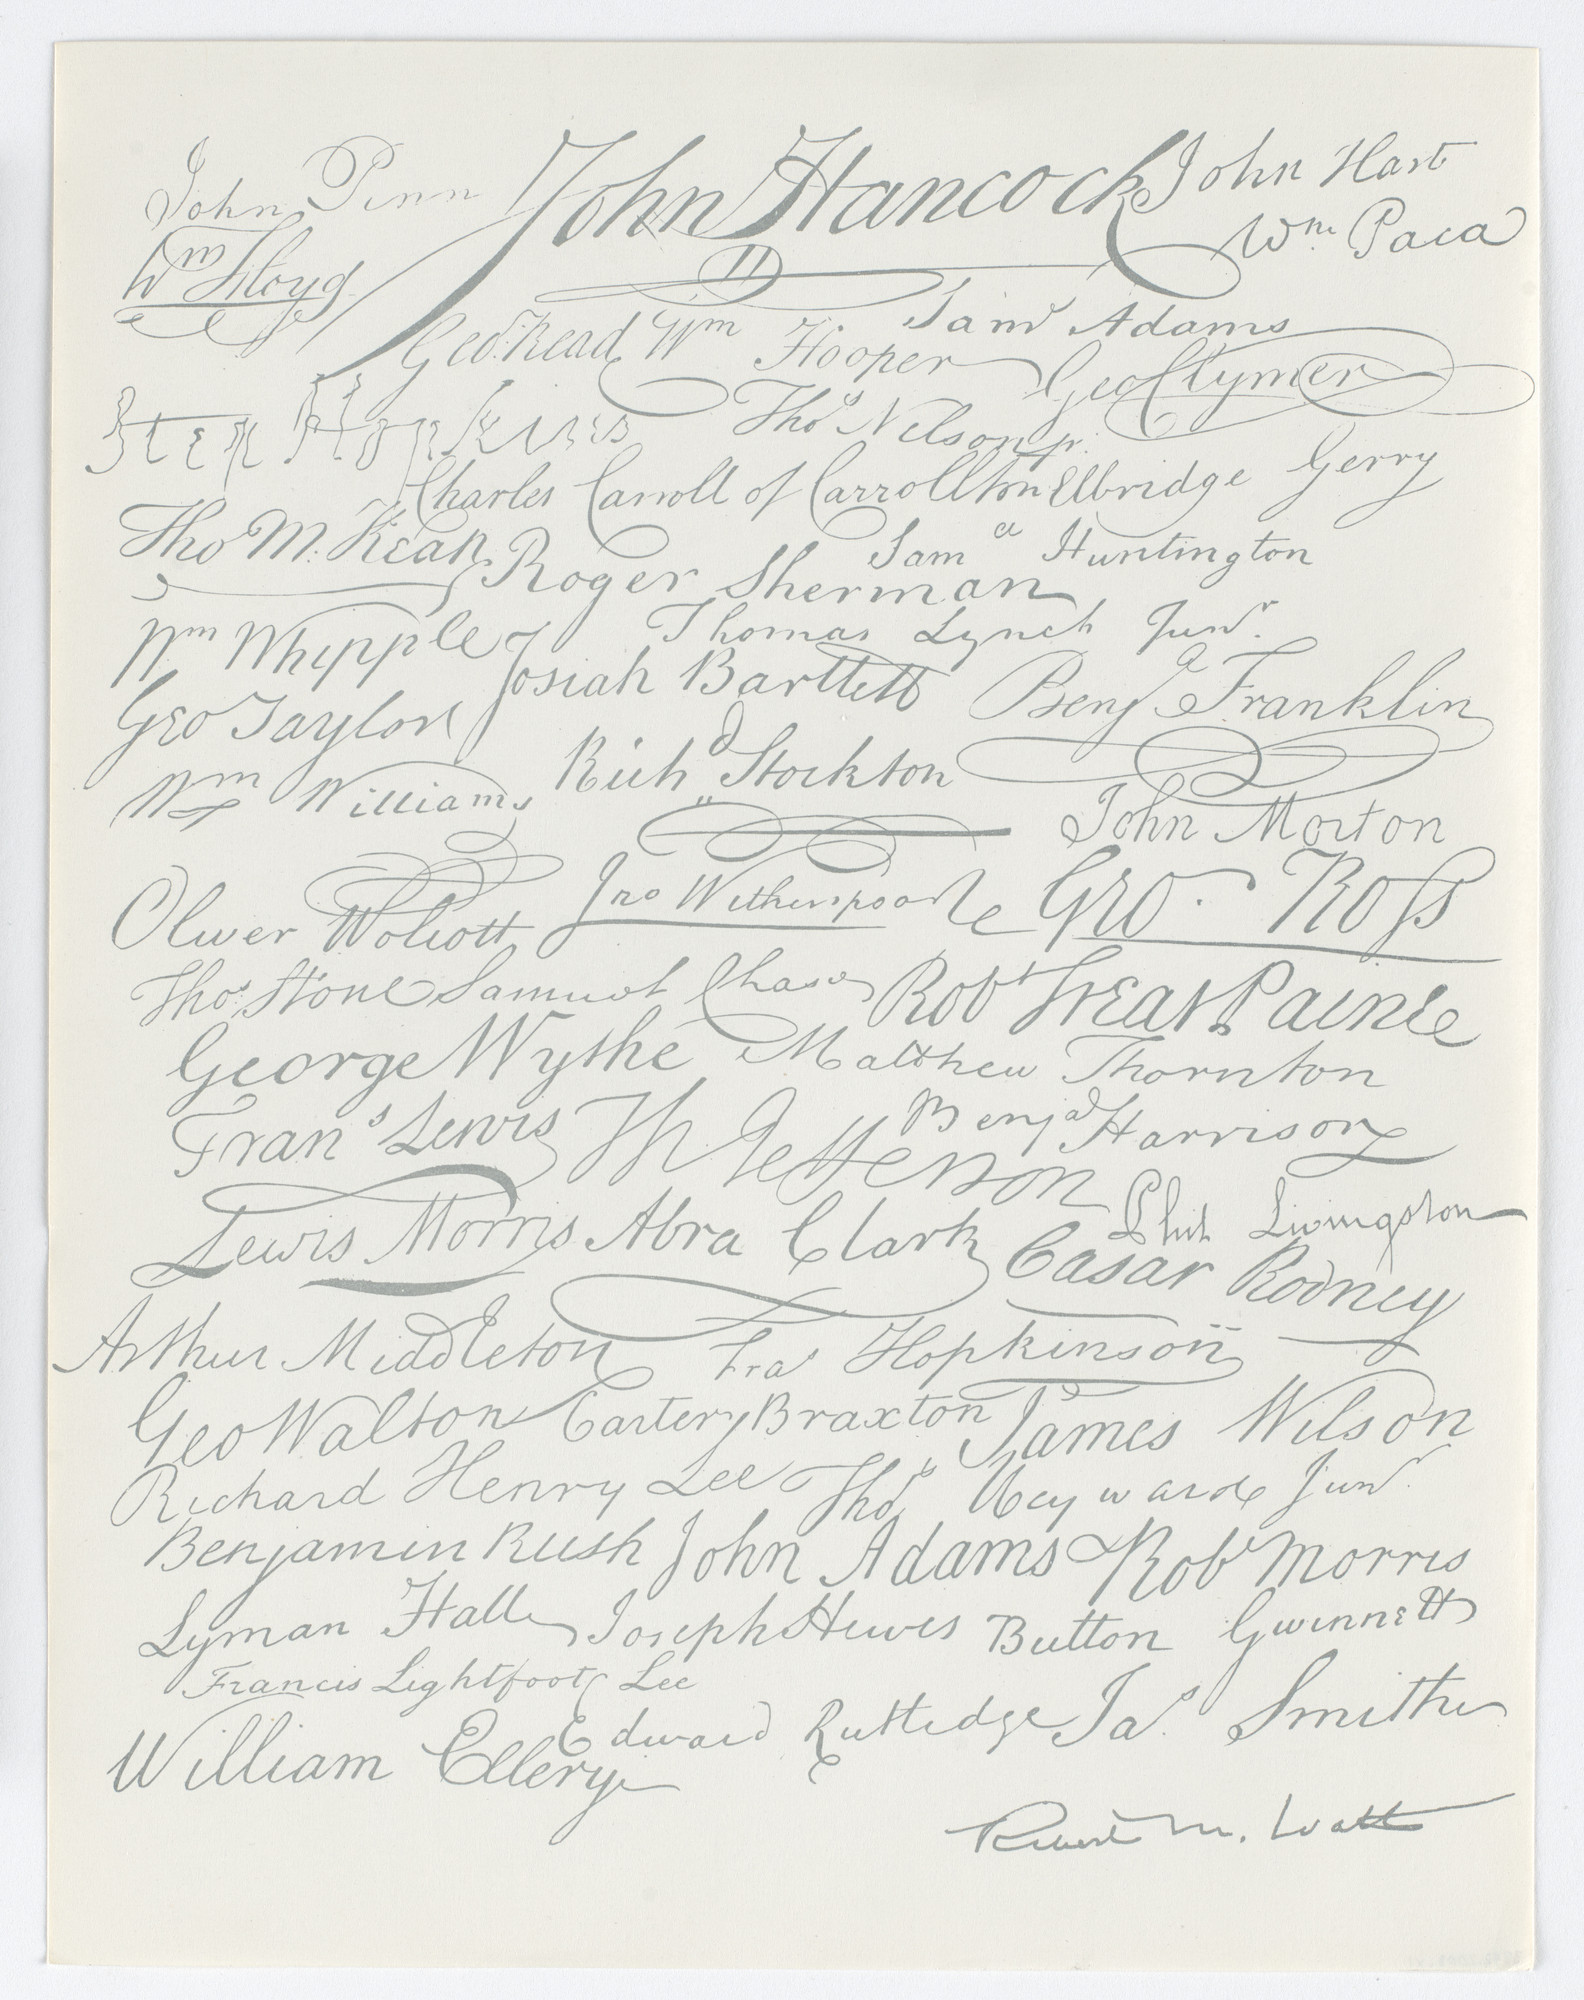 Robert Watts. Signers of the Declaration of Independence Letter Paper. c. 1973